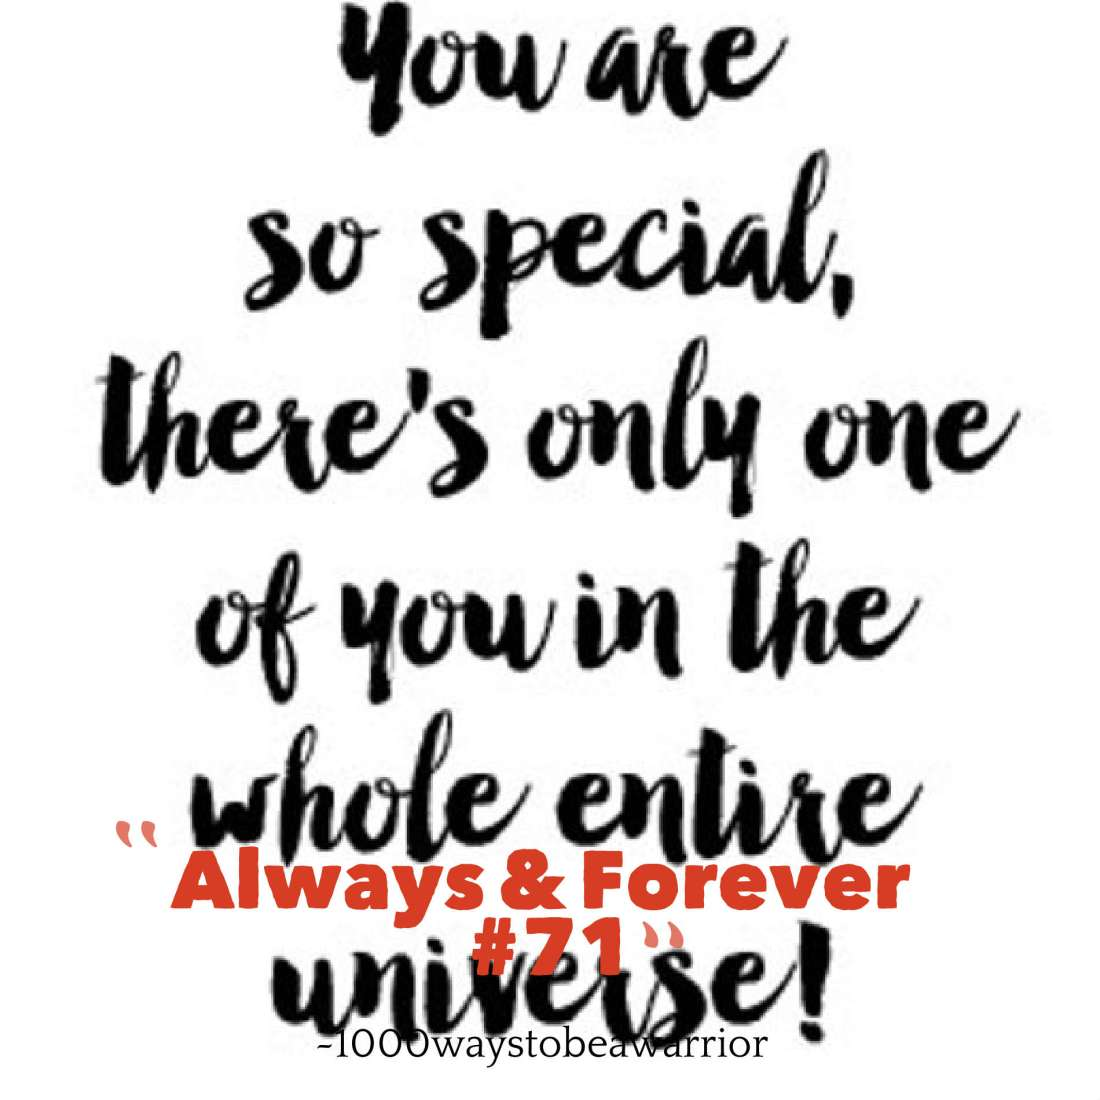 quotes-Always---Forever----